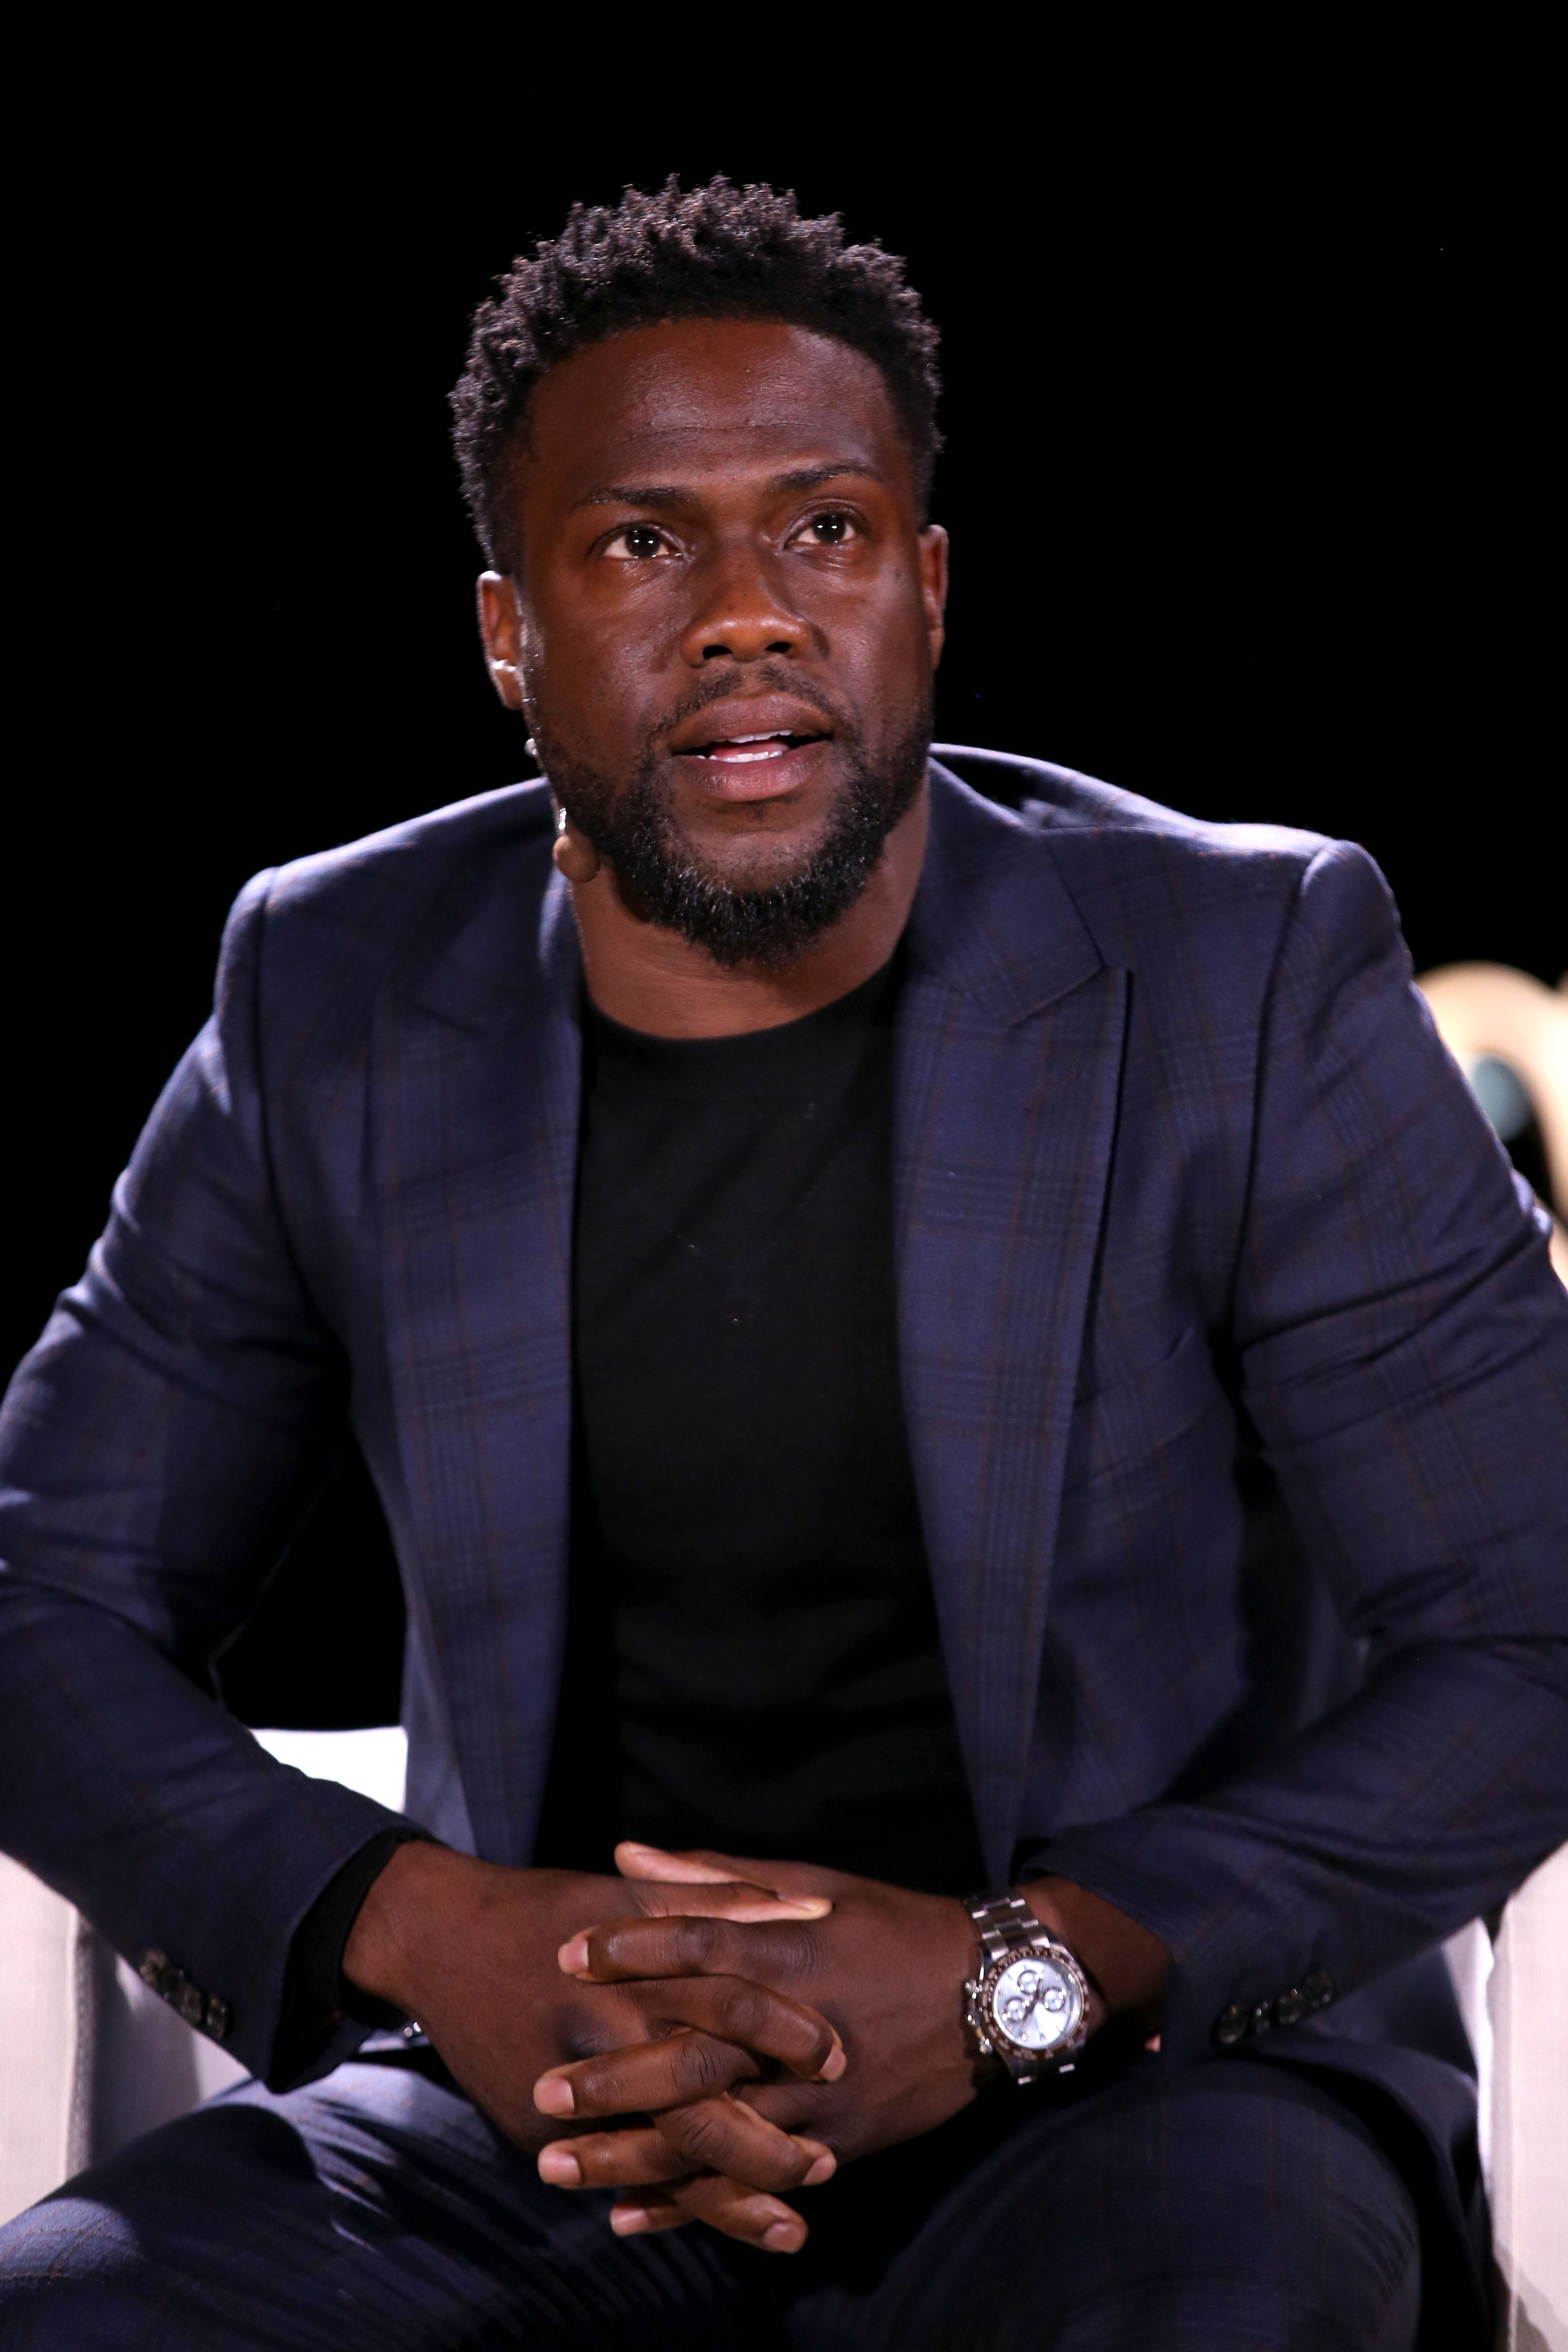 Kevin Hart Says He's Stepped Down From Oscar Hosting Gig Amid Controversy Over Old